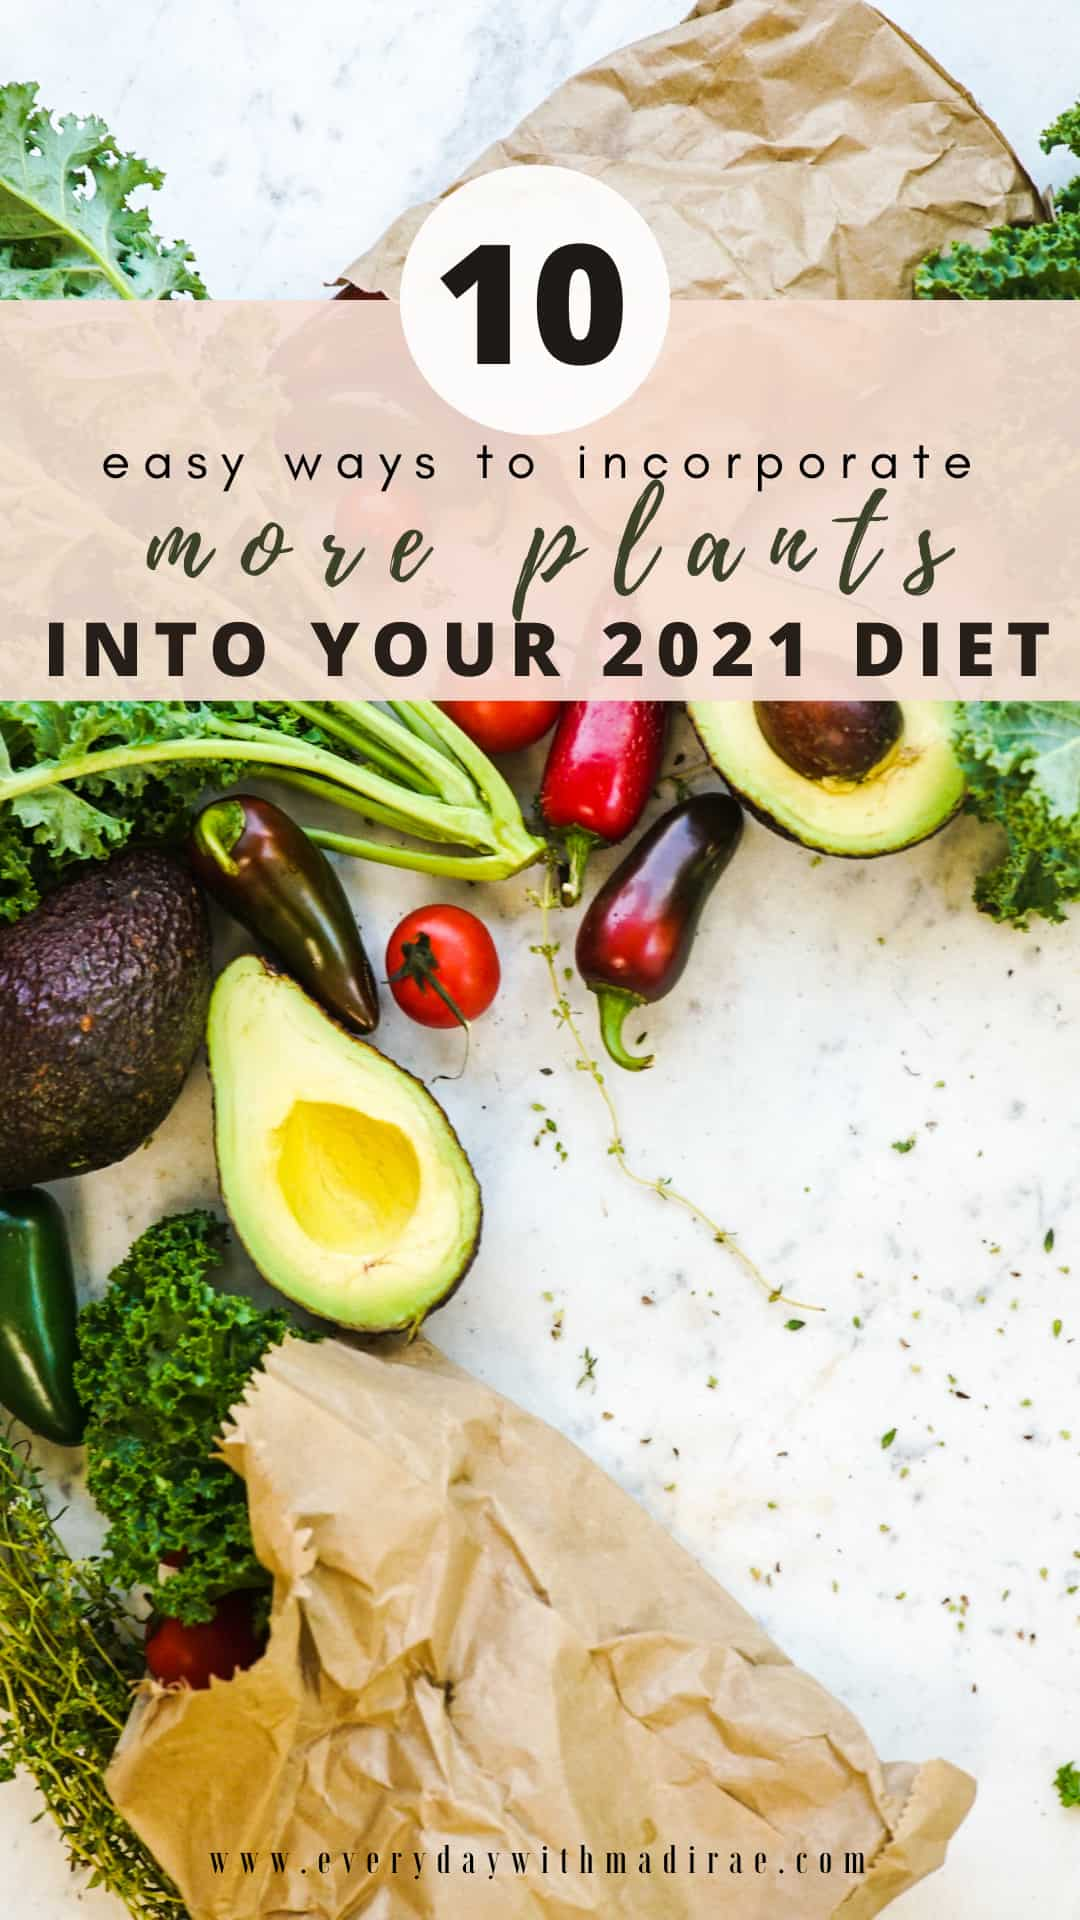 Sharing 10 easy ways to incorporate more plants into your diet in 2021! These simple plant based tips will help better fuel both body & mind!